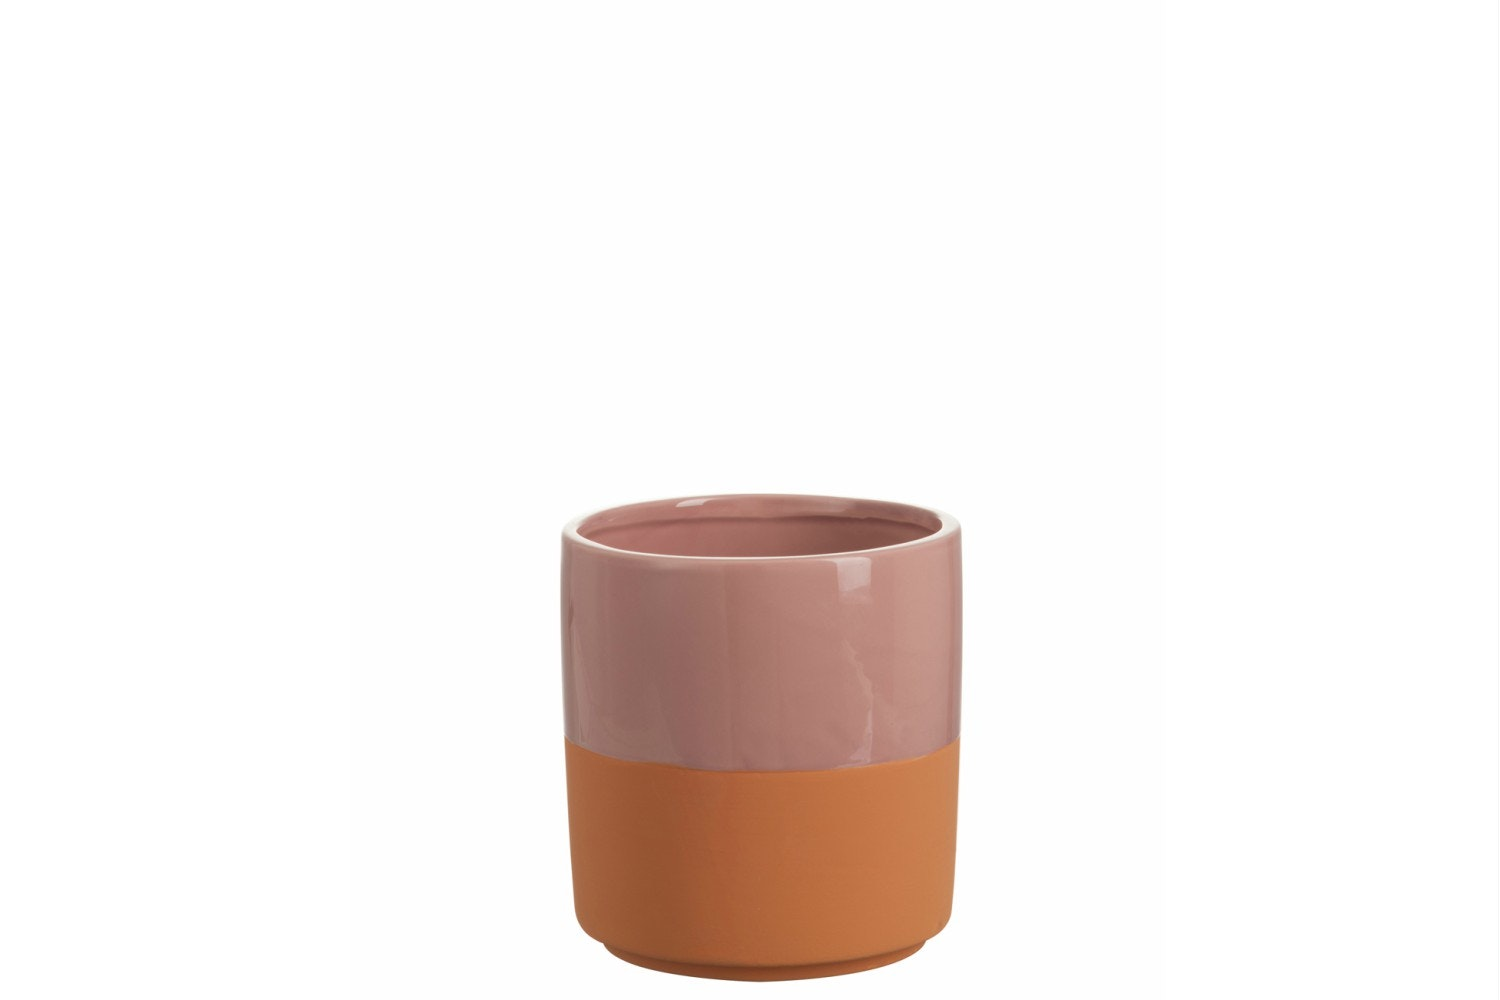 Ceramic Cachepot Round Border in Pink | Large